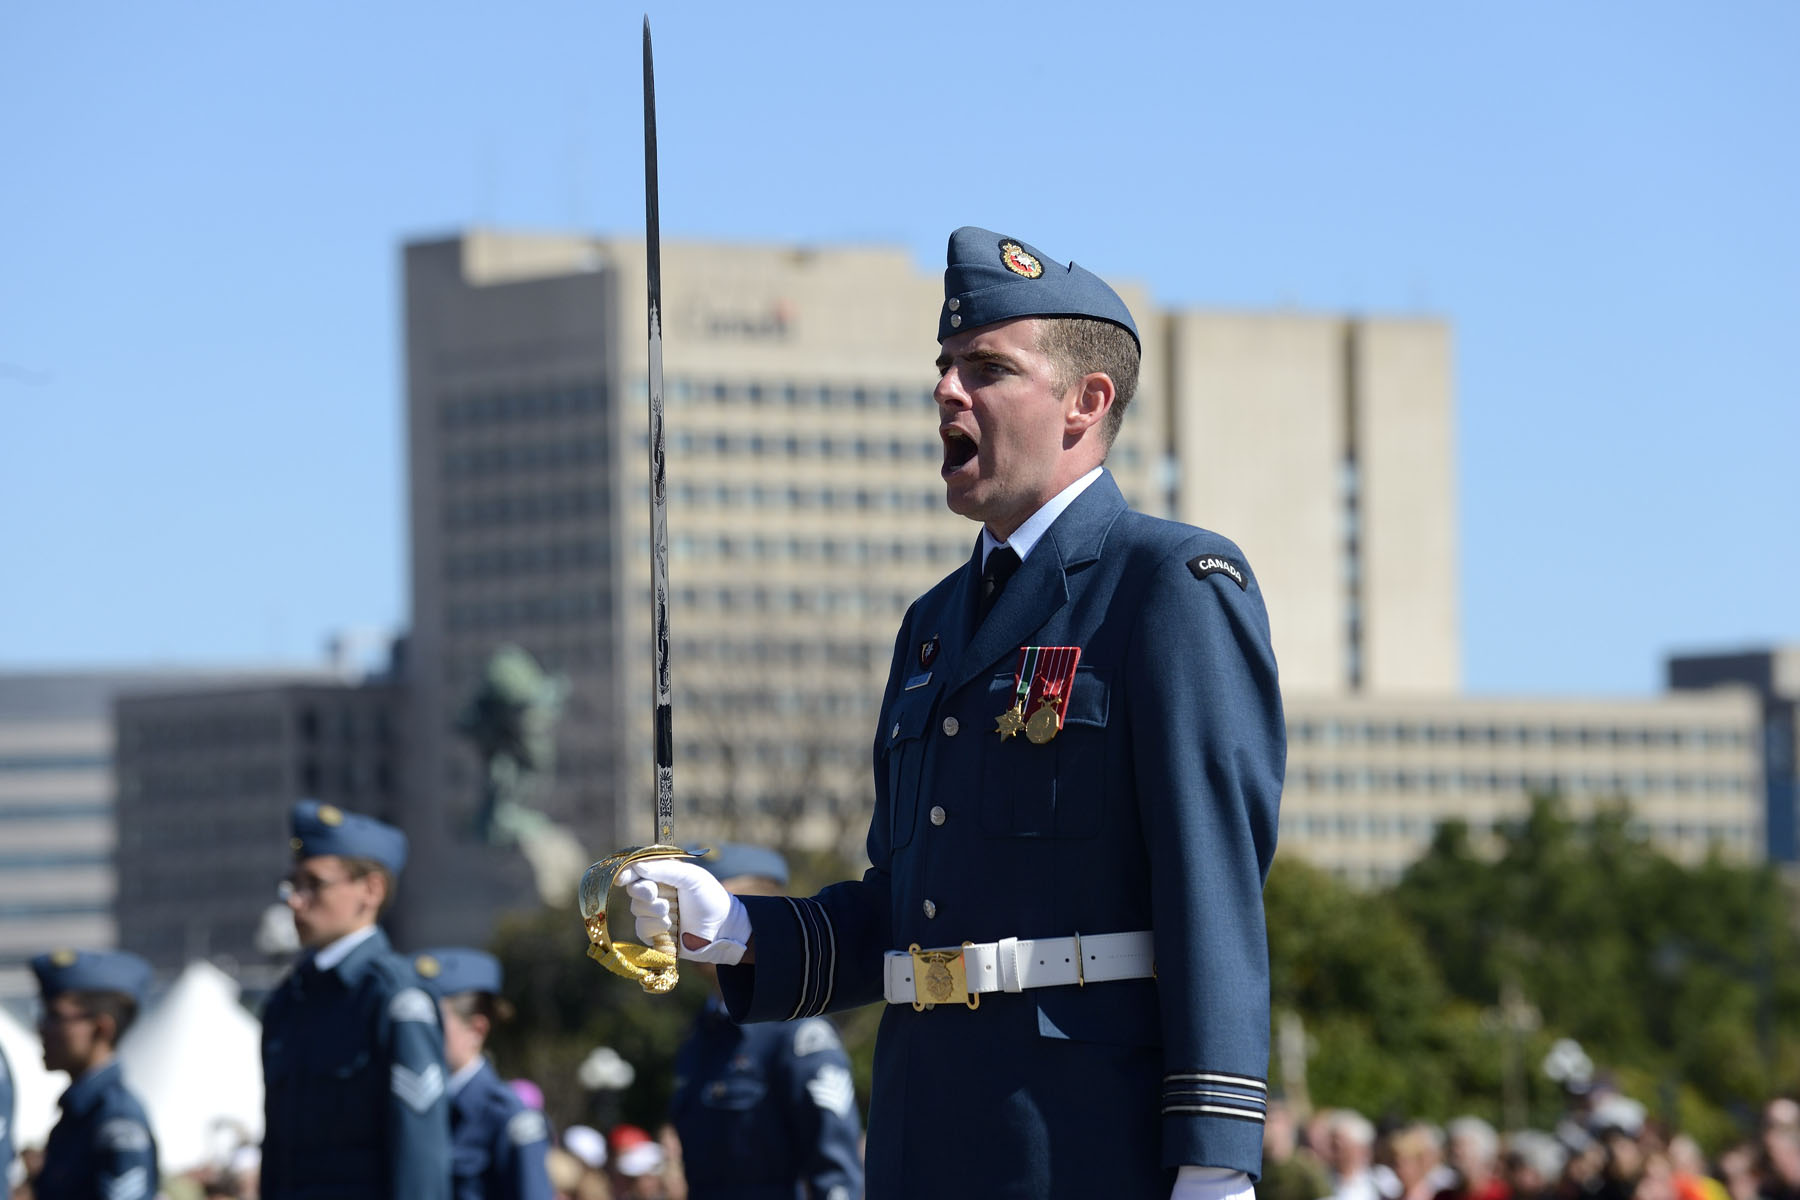 Major Dany Gilbert was the Parade Commander for this national commemoration.